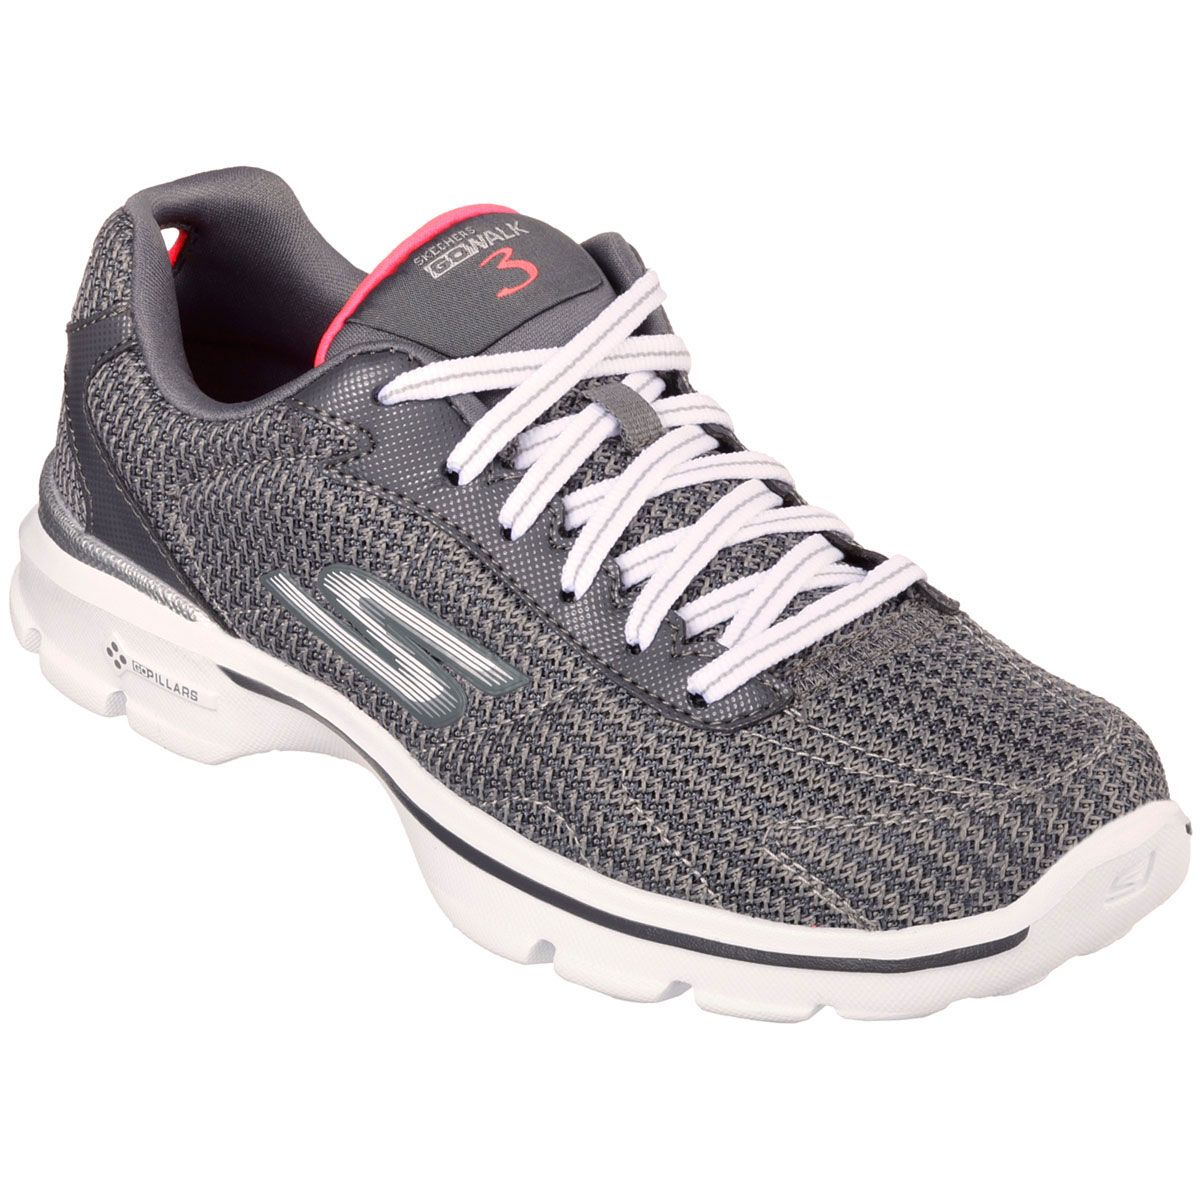 skechers womens go walk 3 fit knit walking shoes